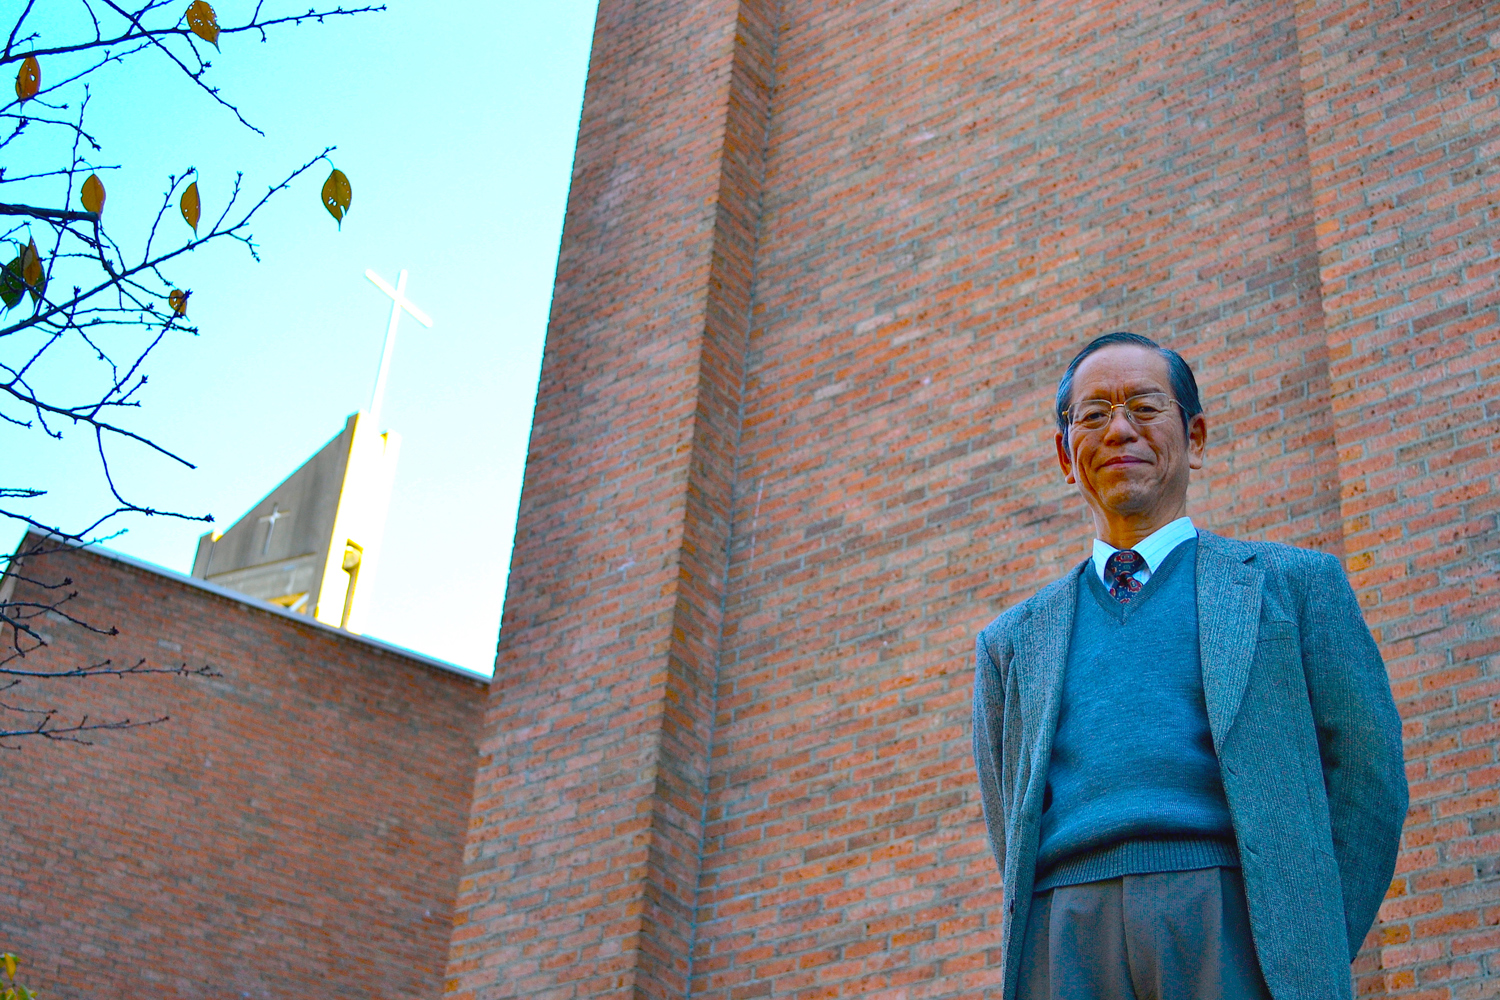 Reverend Kazuo Yoshimura with his gently, unfailing smile.